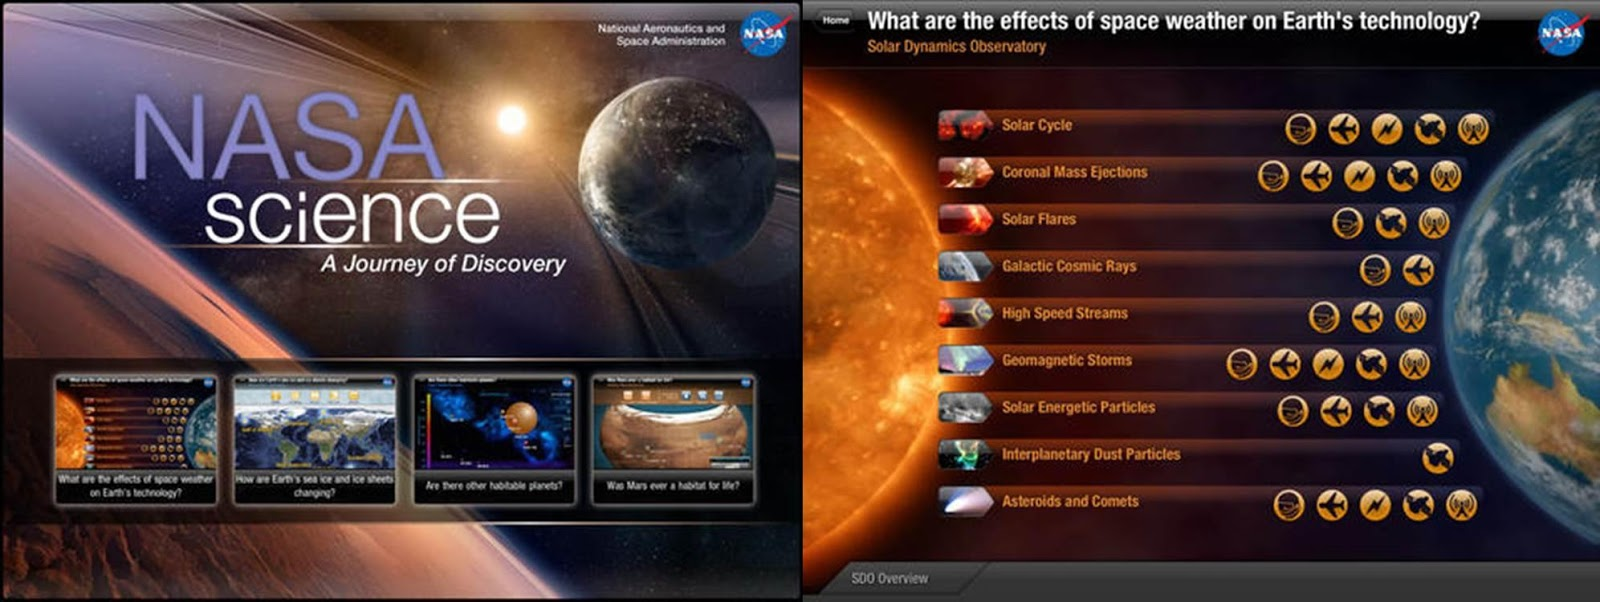 C:\Users\Pronskiy\Desktop\NASA Apps\JtD.jpg